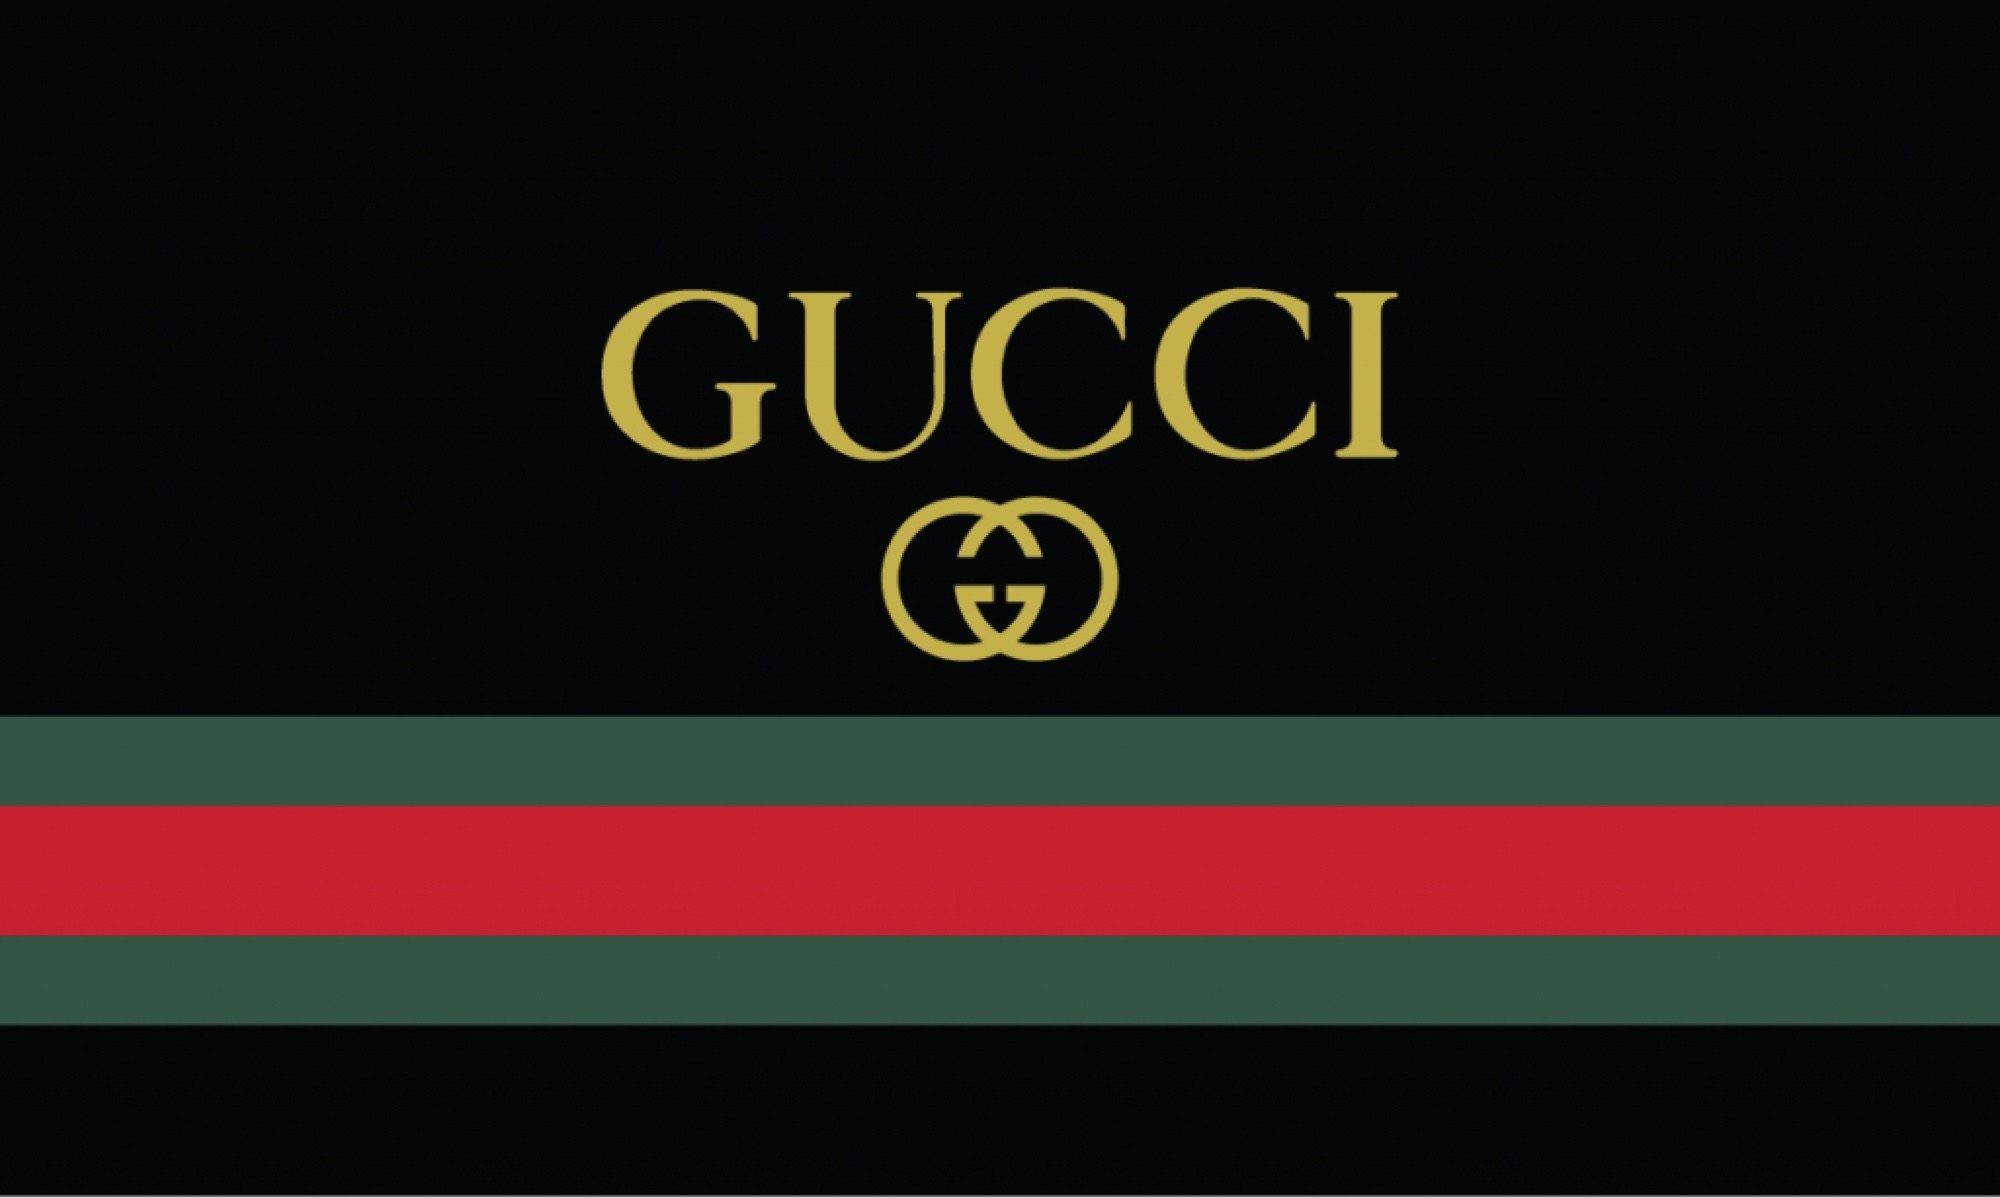 Red Gucci Wallpapers On Wallpaperdog